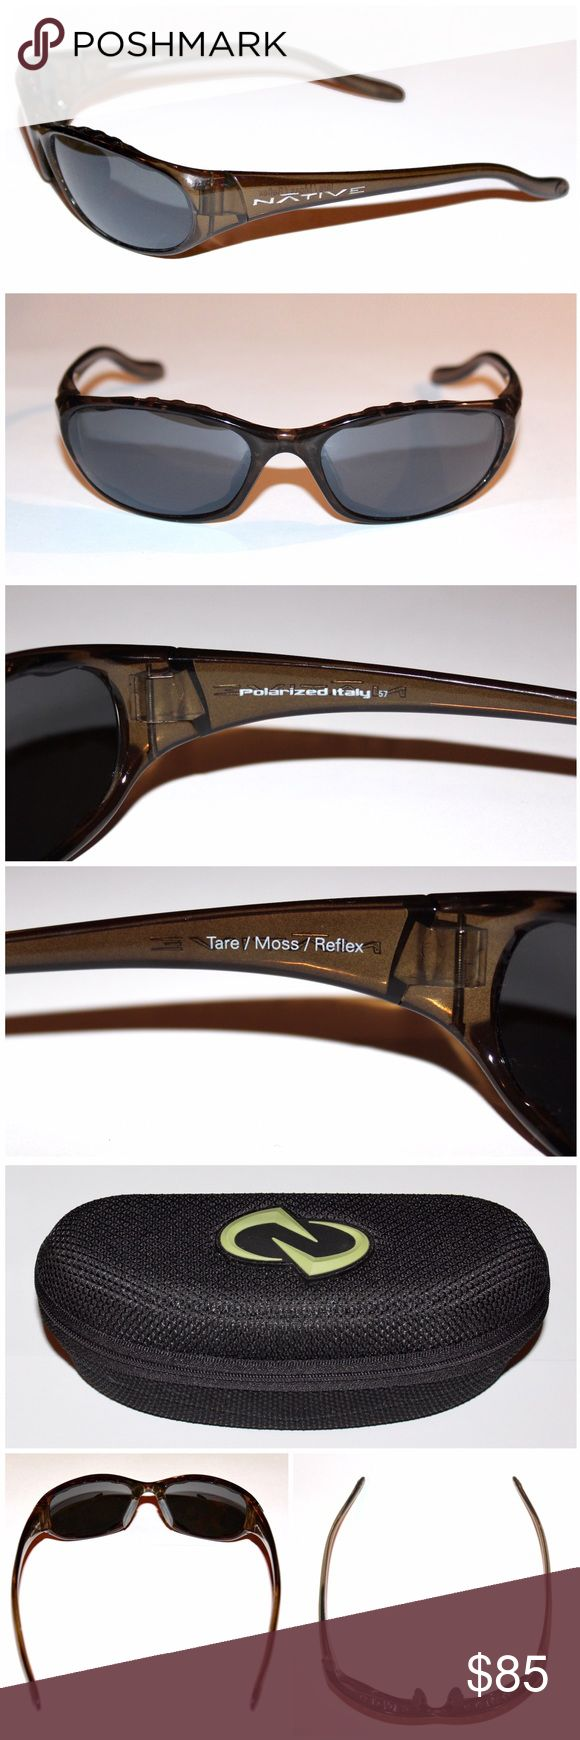 NATIVE Tare Polarized Moss/Silver Reflex Sunglases NATIVE  Tare Polarized Sunglasses    These Native 121-356-521 Tare Moss Silver Reflex Sunglasses may not be rose-colored, but they'll still improve your view of the world around you - or, at least, help you get a much better look at the world around you.  - Frame: plastic  - Hinge: Cam-Action  - Lens: Crystal Carbonate  - Interchangeable Lens: yes, Sportsflex  - Lenses Included: 1 extra  - Polarized: yes  - Face Size: medium  - Case Type…